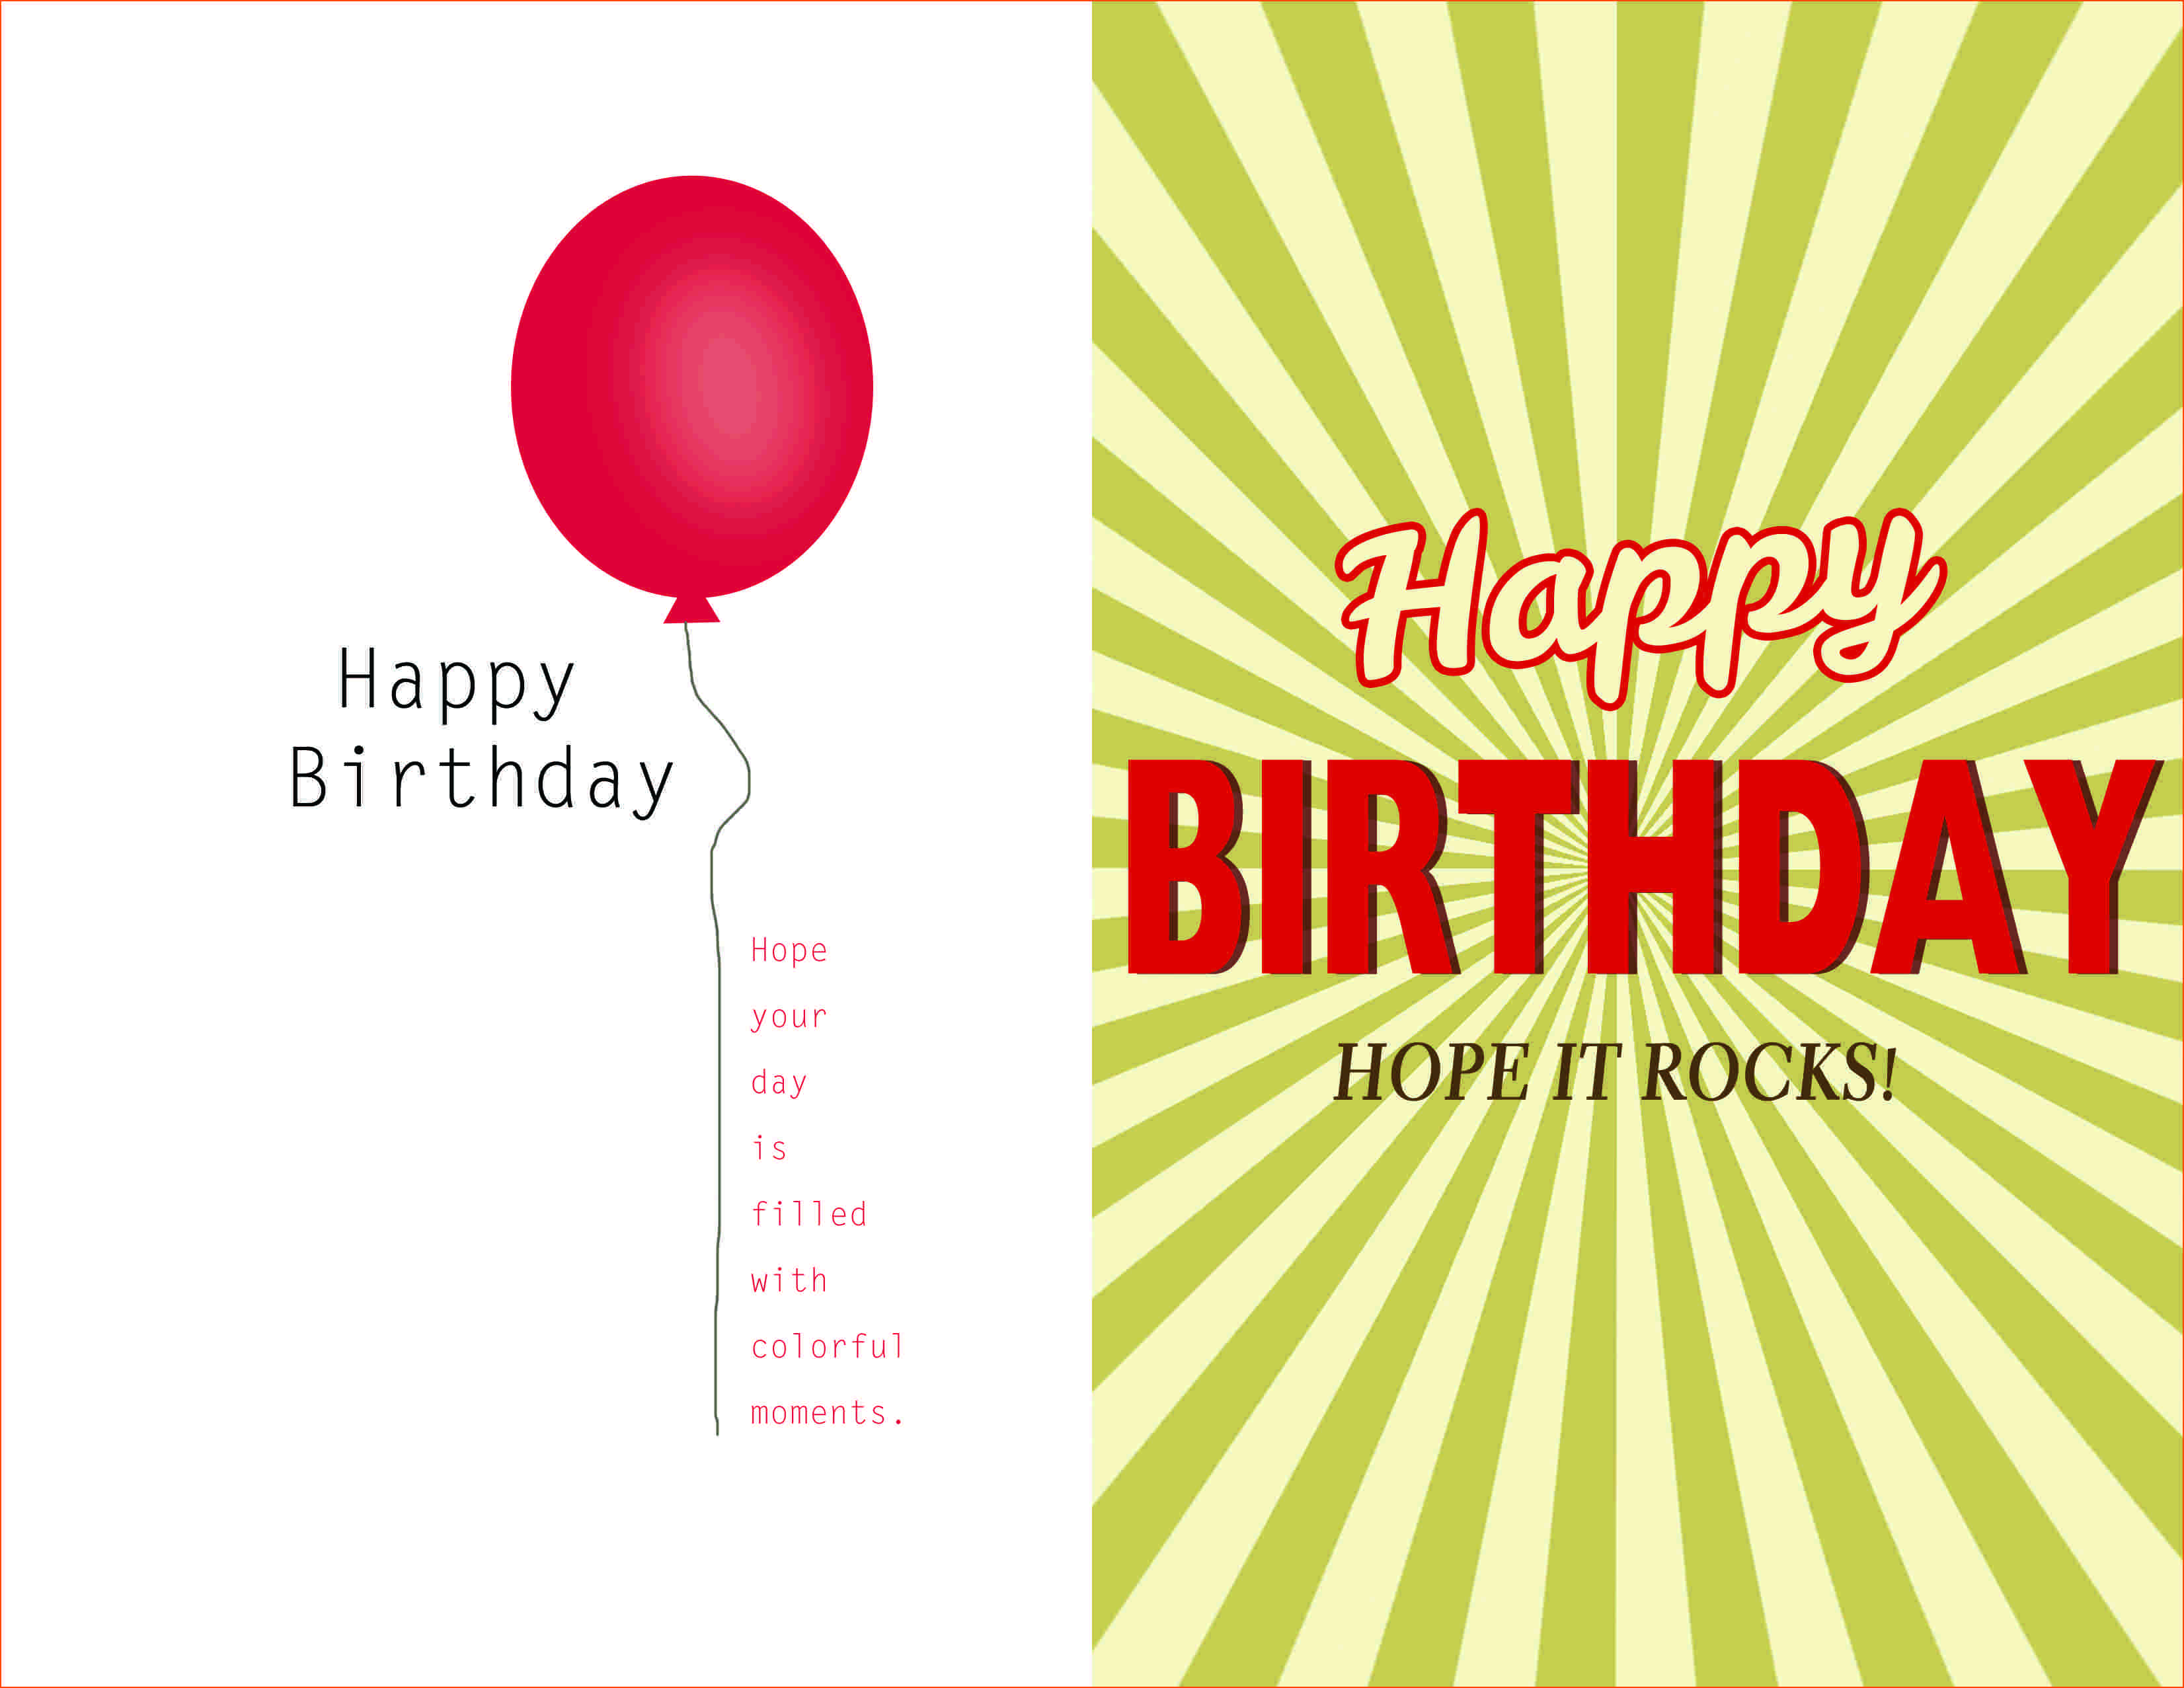 printable birthday card template ; birthday-cards-templates-birthday-card-stock